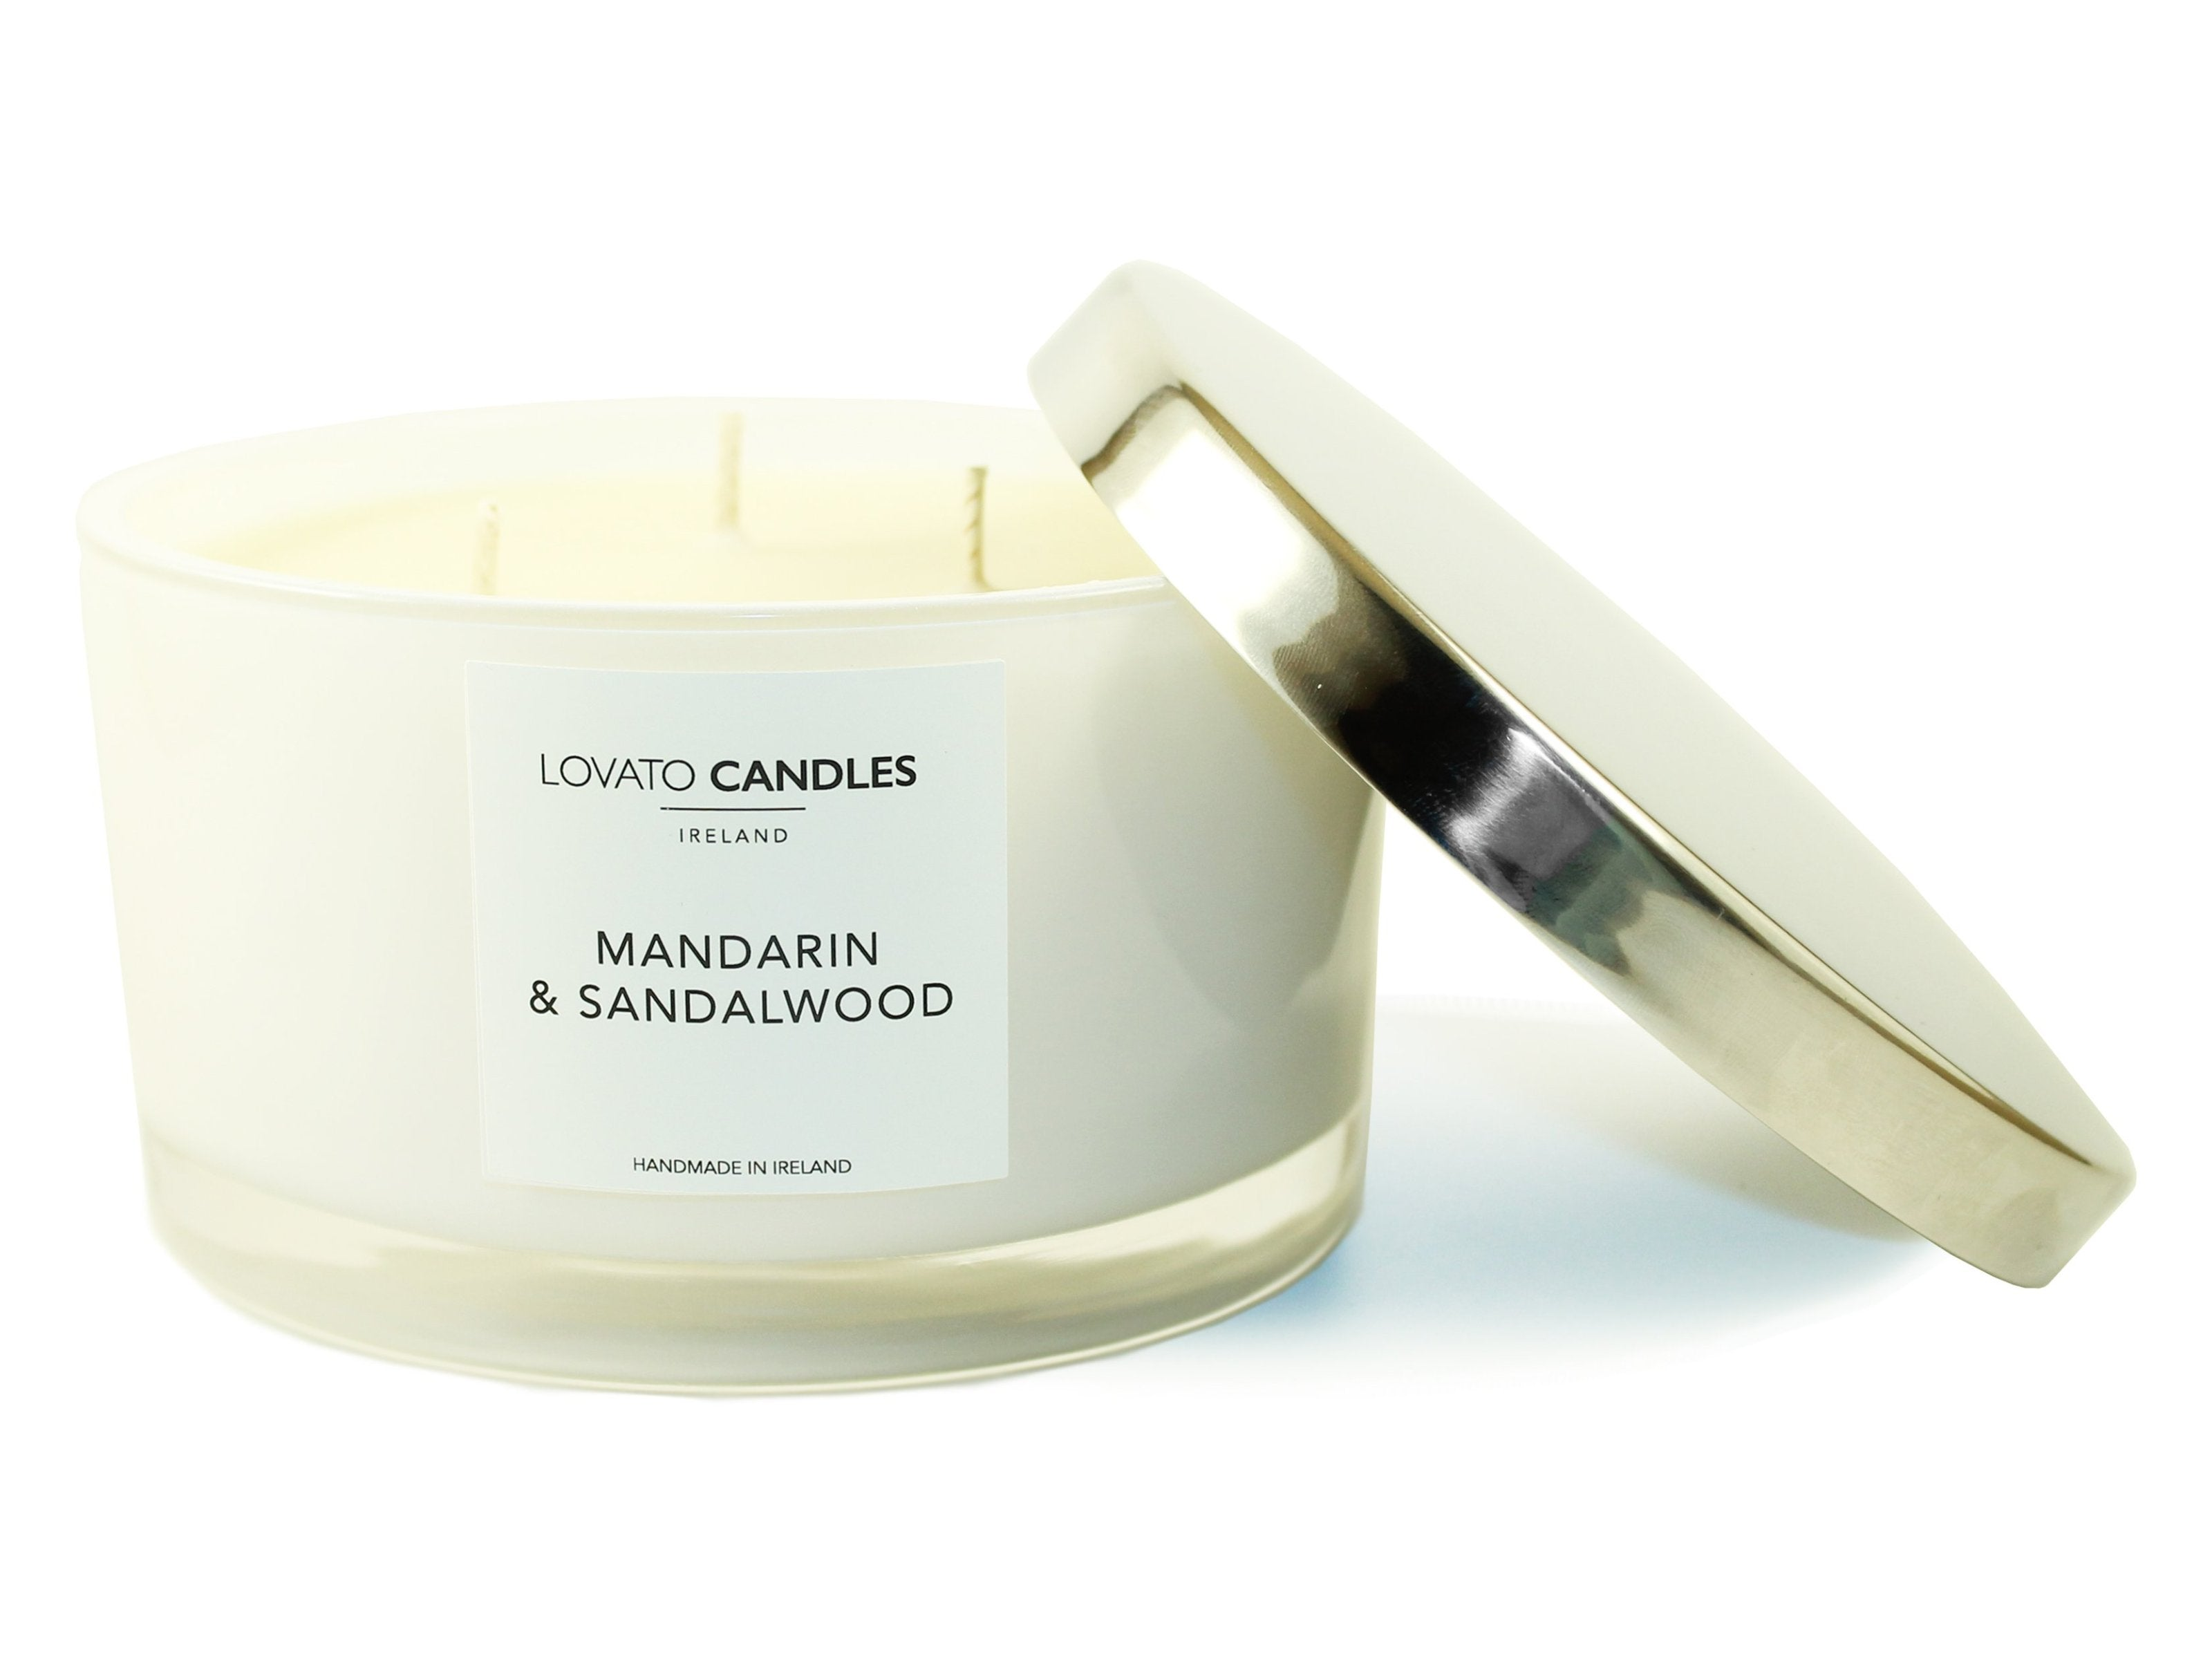 White 3-Wick Candle - Mandarin & Sandalwood - Lovato Candles